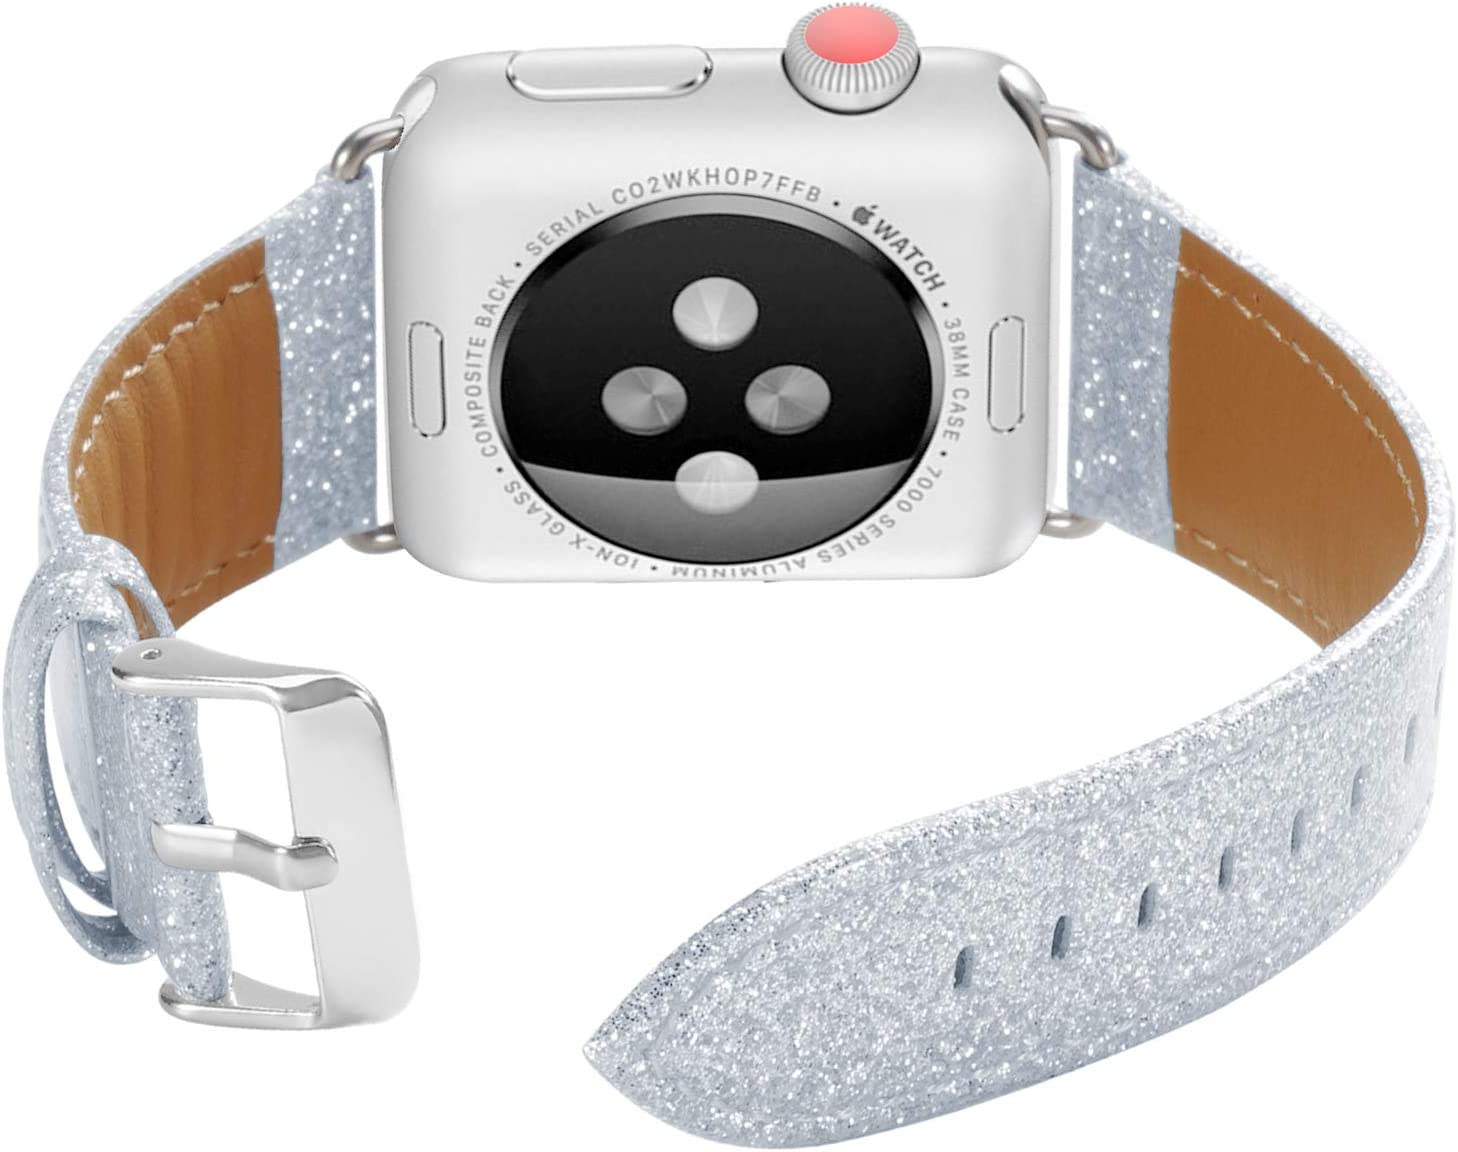 ALADRS Bling Leather Watch Straps Compatible for Apple Watch Glitter Band 42mm 44mm, Shiny Sparkly Wristbands Replacement for iWatch Series 6 5 4, SE (44mm) Series 3 2 1 (42mm), Silver